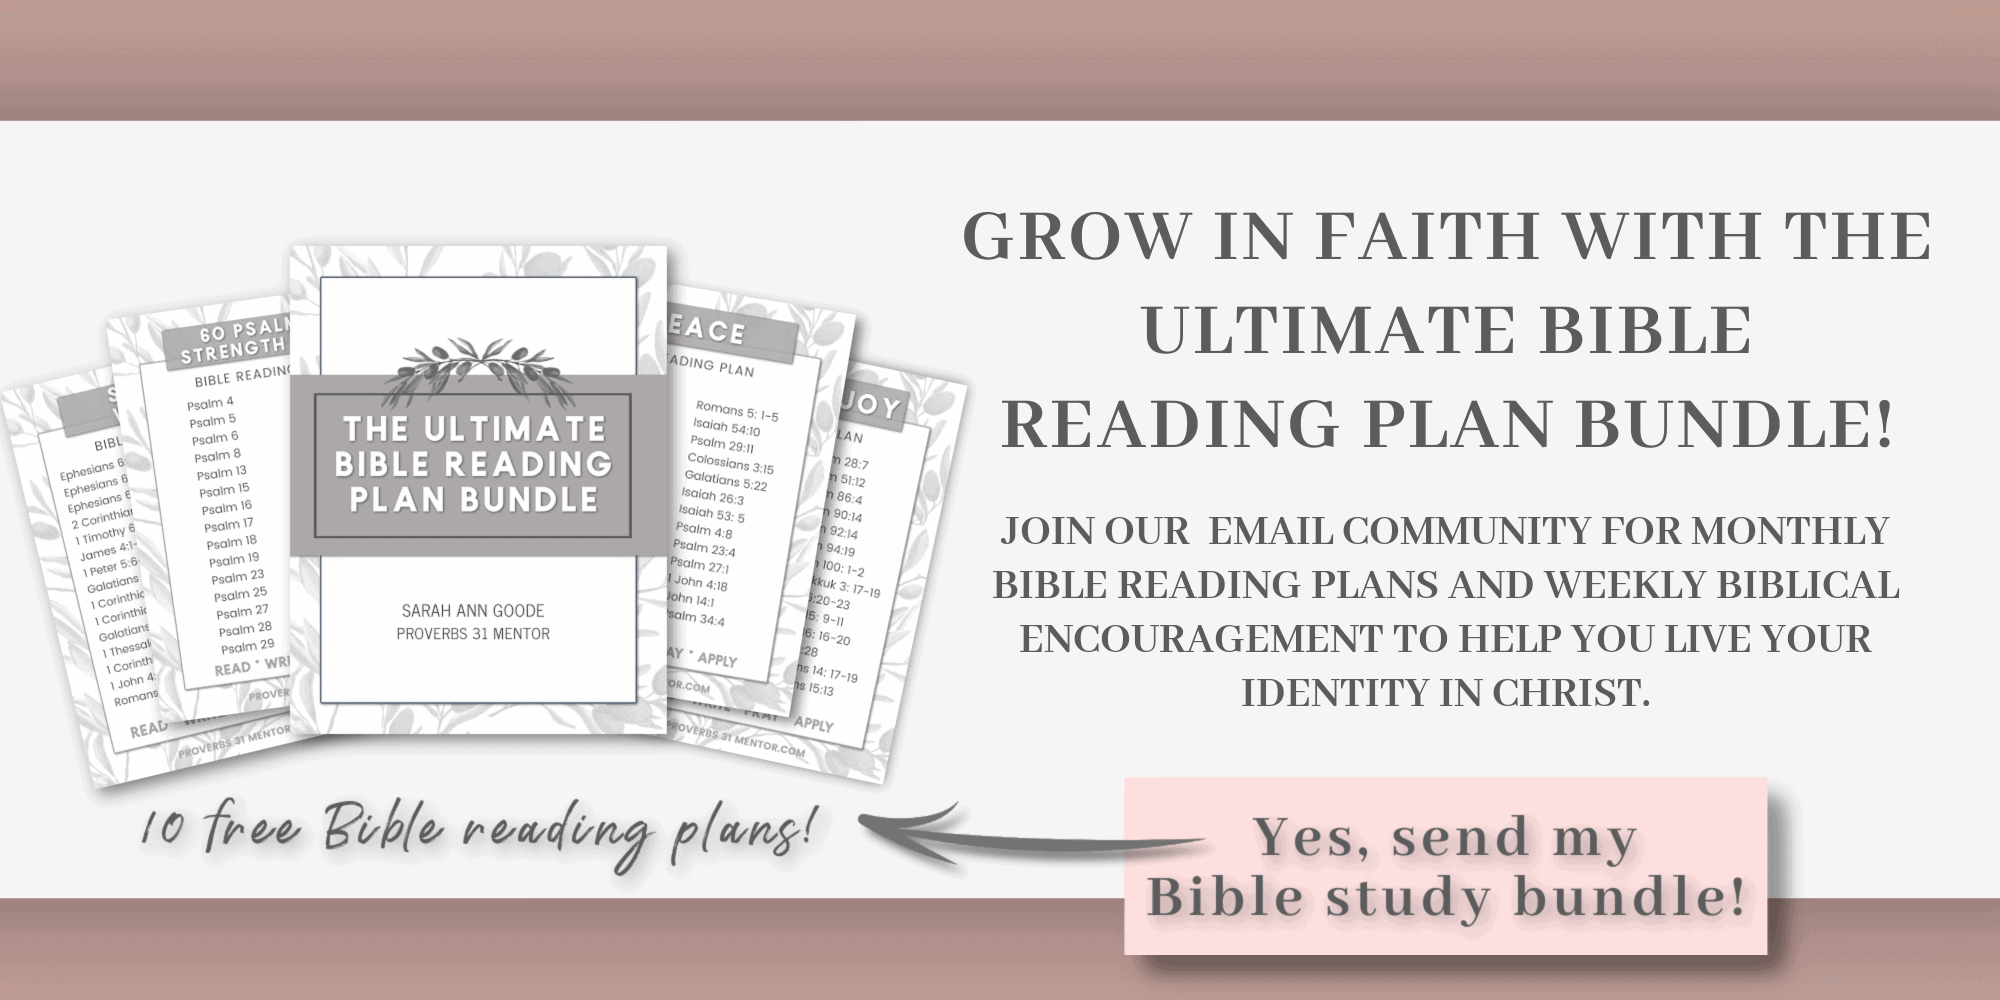 picture of the Ultimate Bible Reading Plan optin form